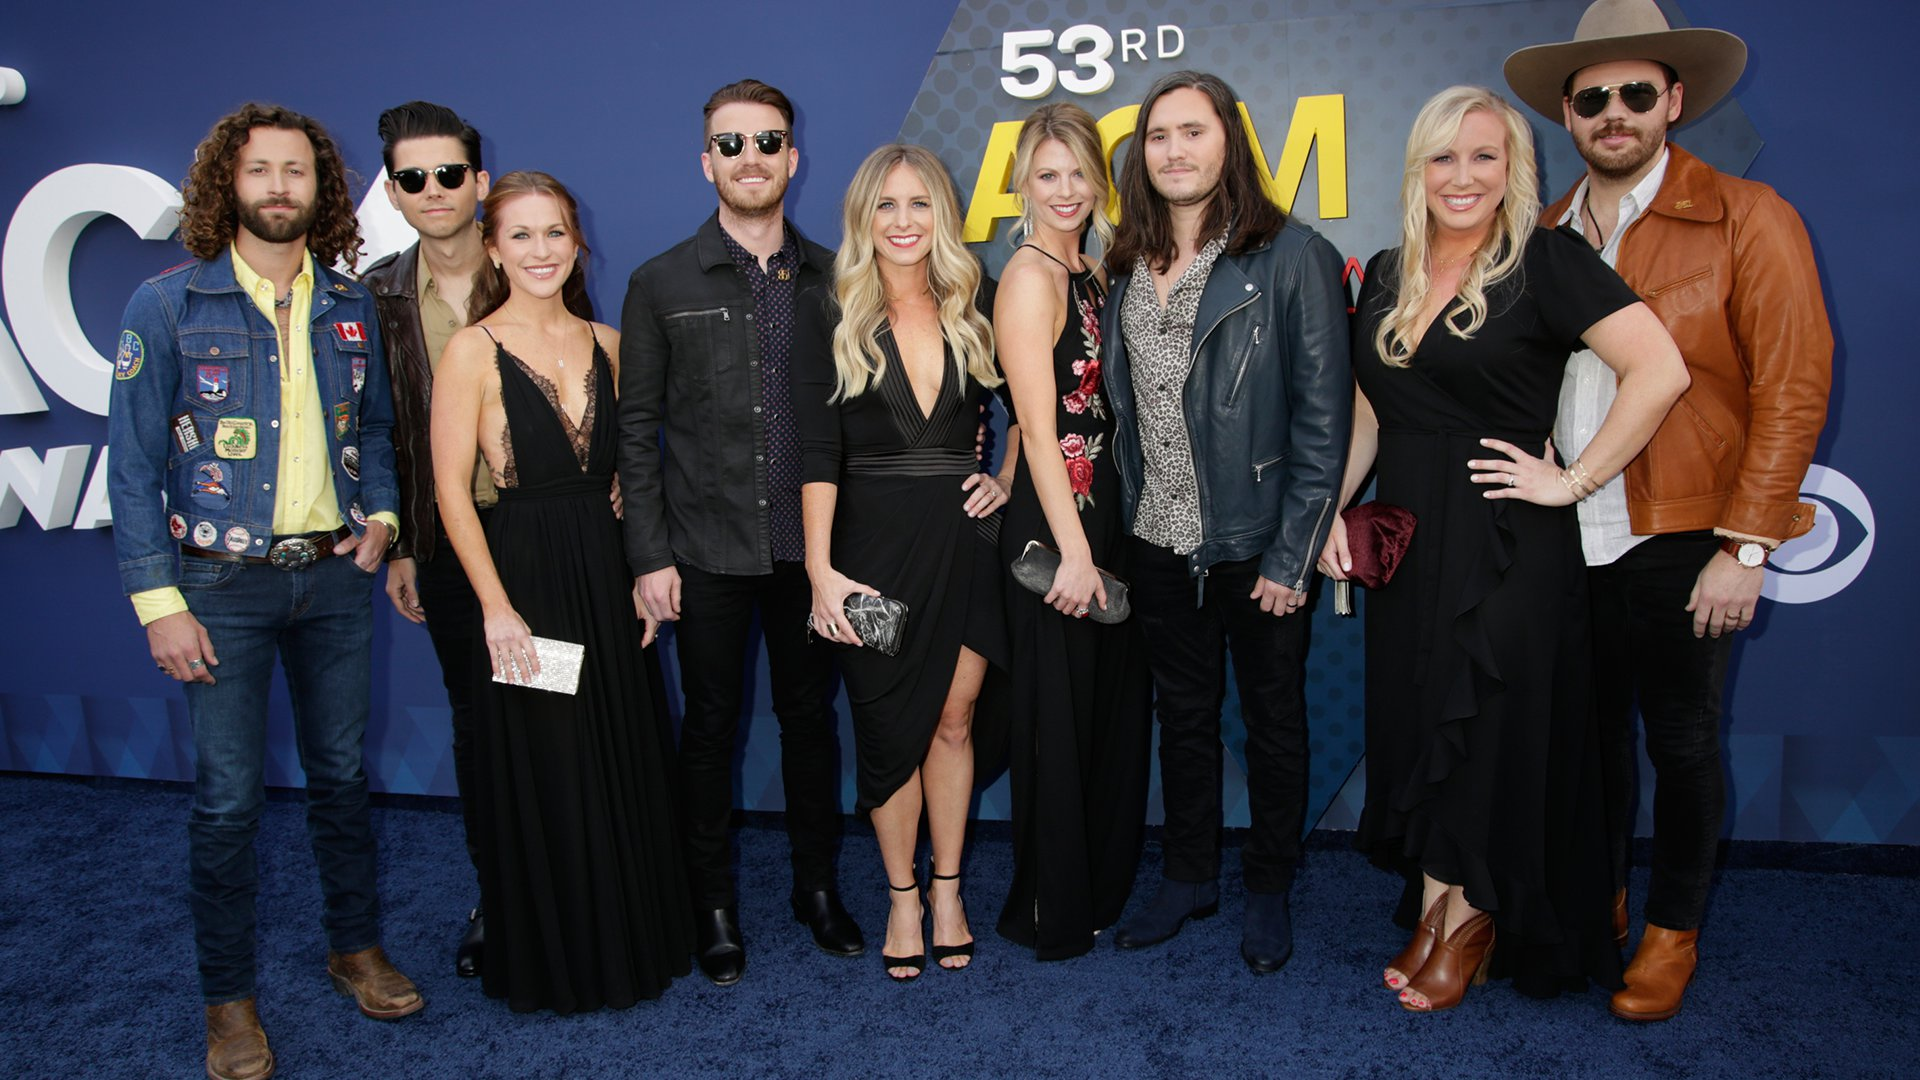 LANCO and their crew occupy a lot of stylish real estate on the ACM red carpet.